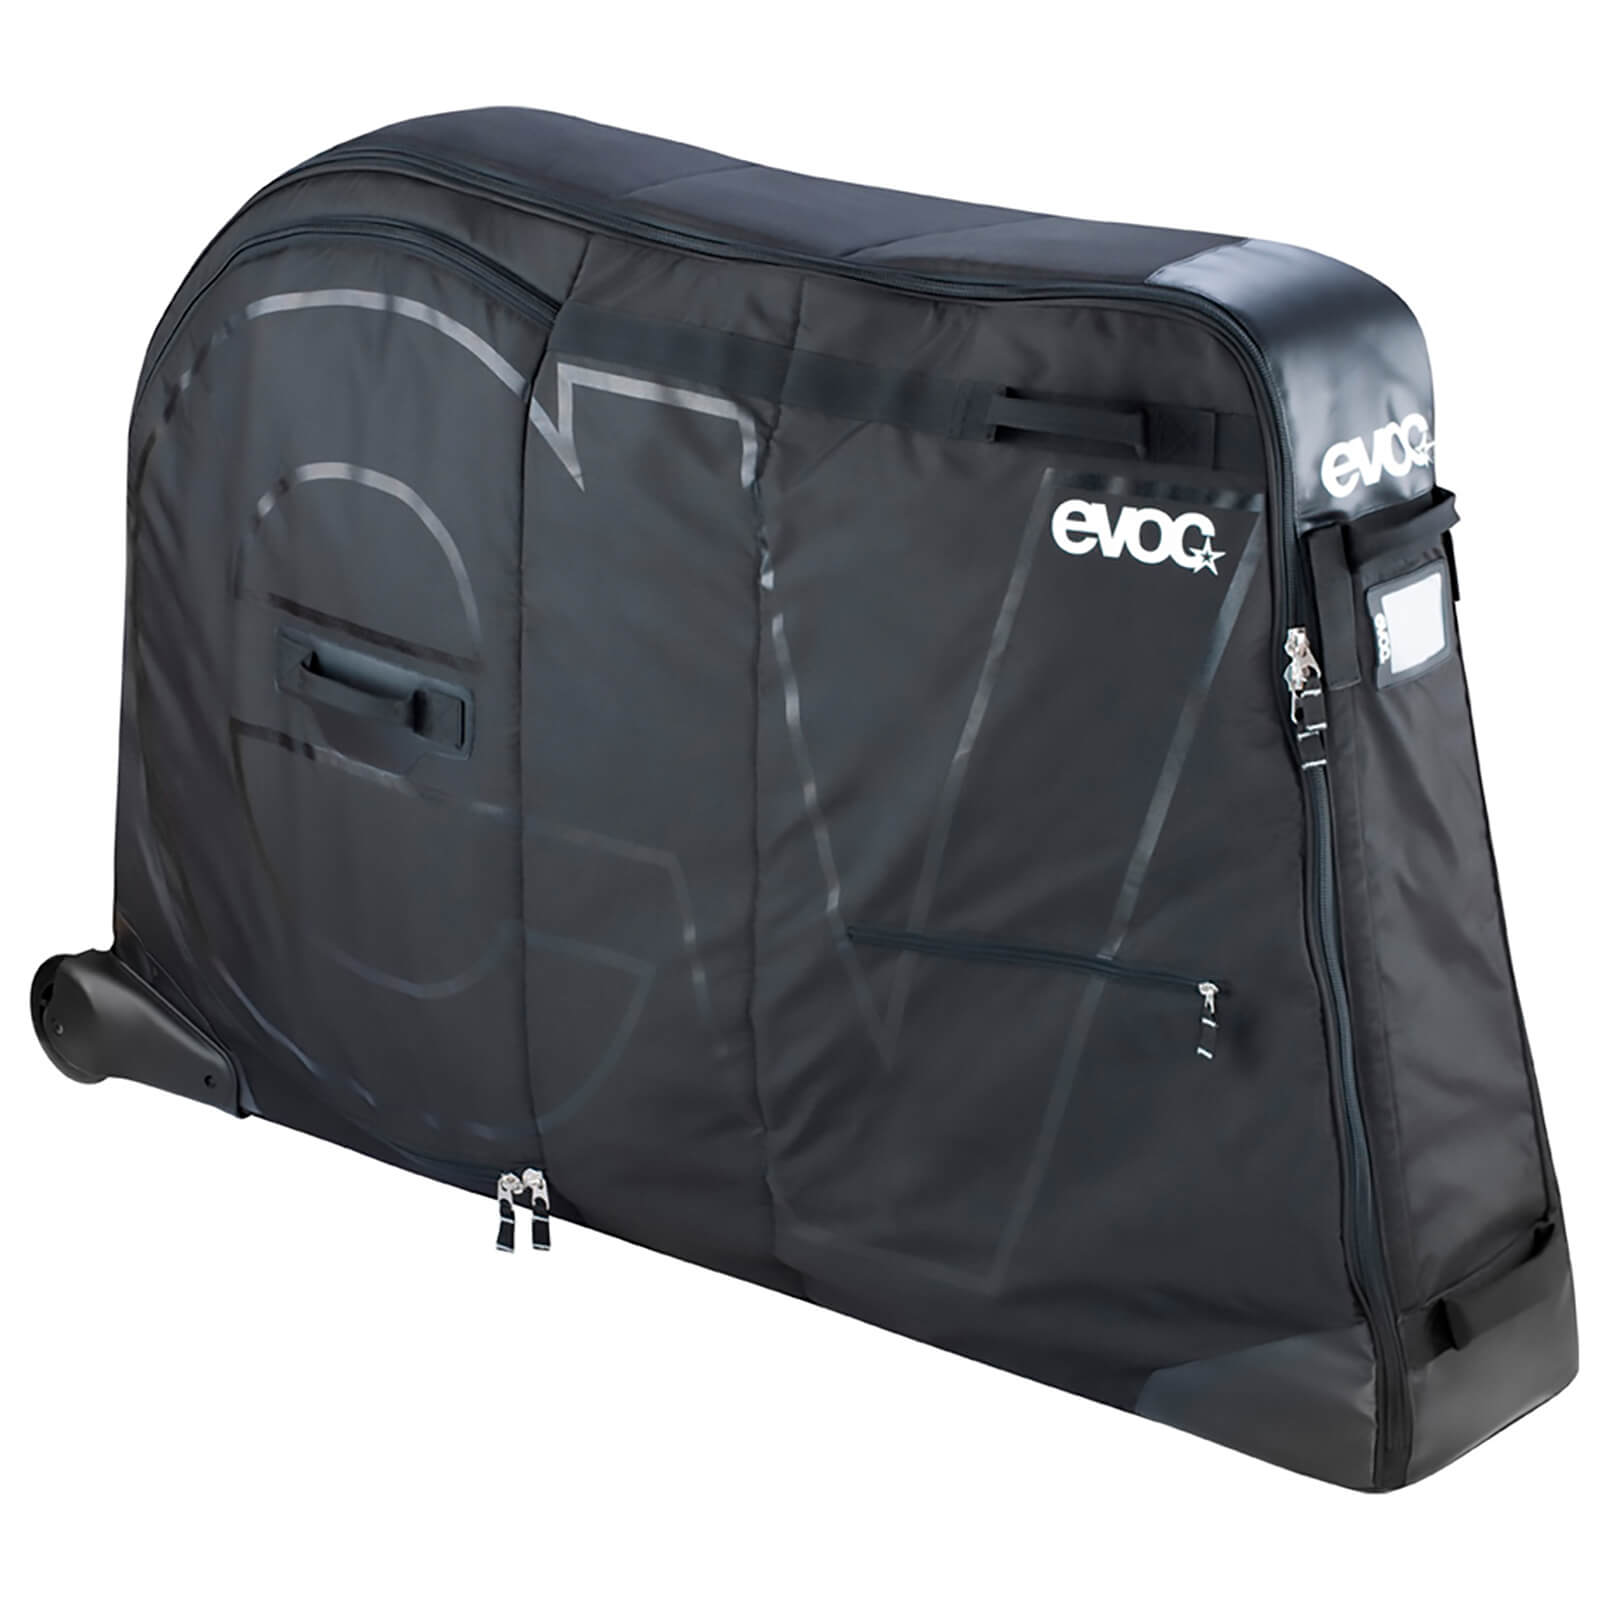 Evoc Bike Travel Bag 280L - Black